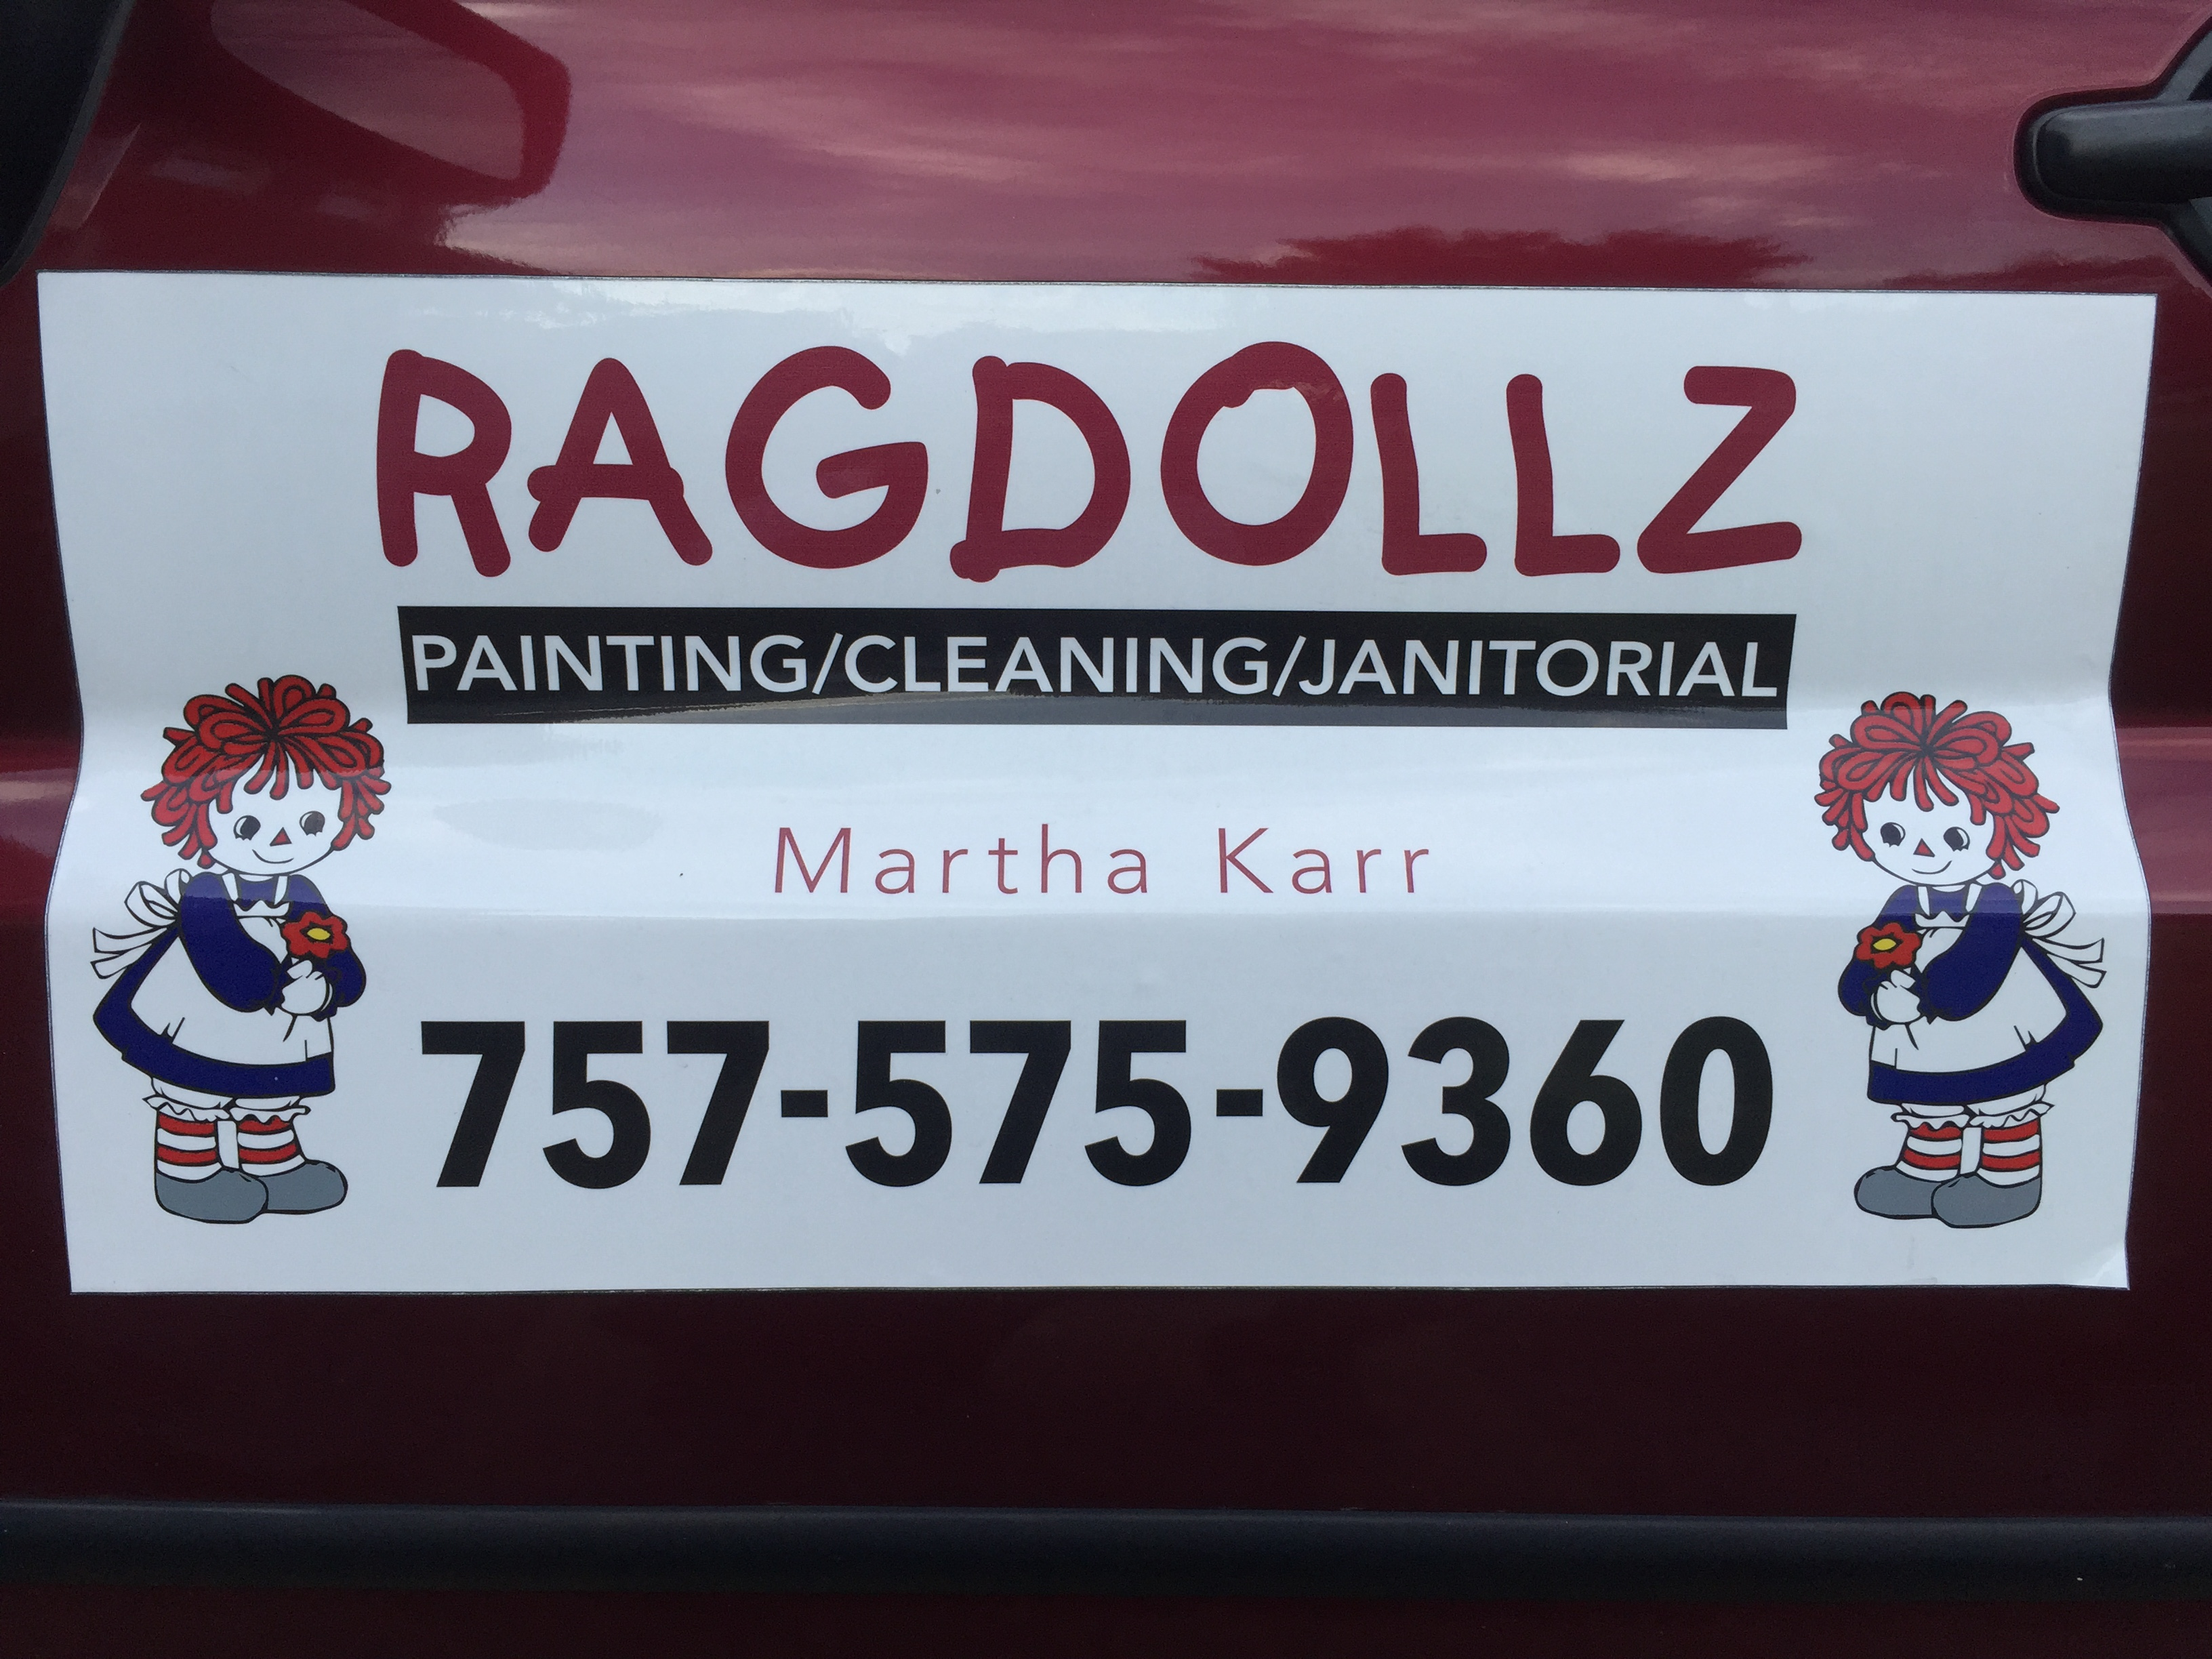 Ragdollz Painting and Cleaning image 5